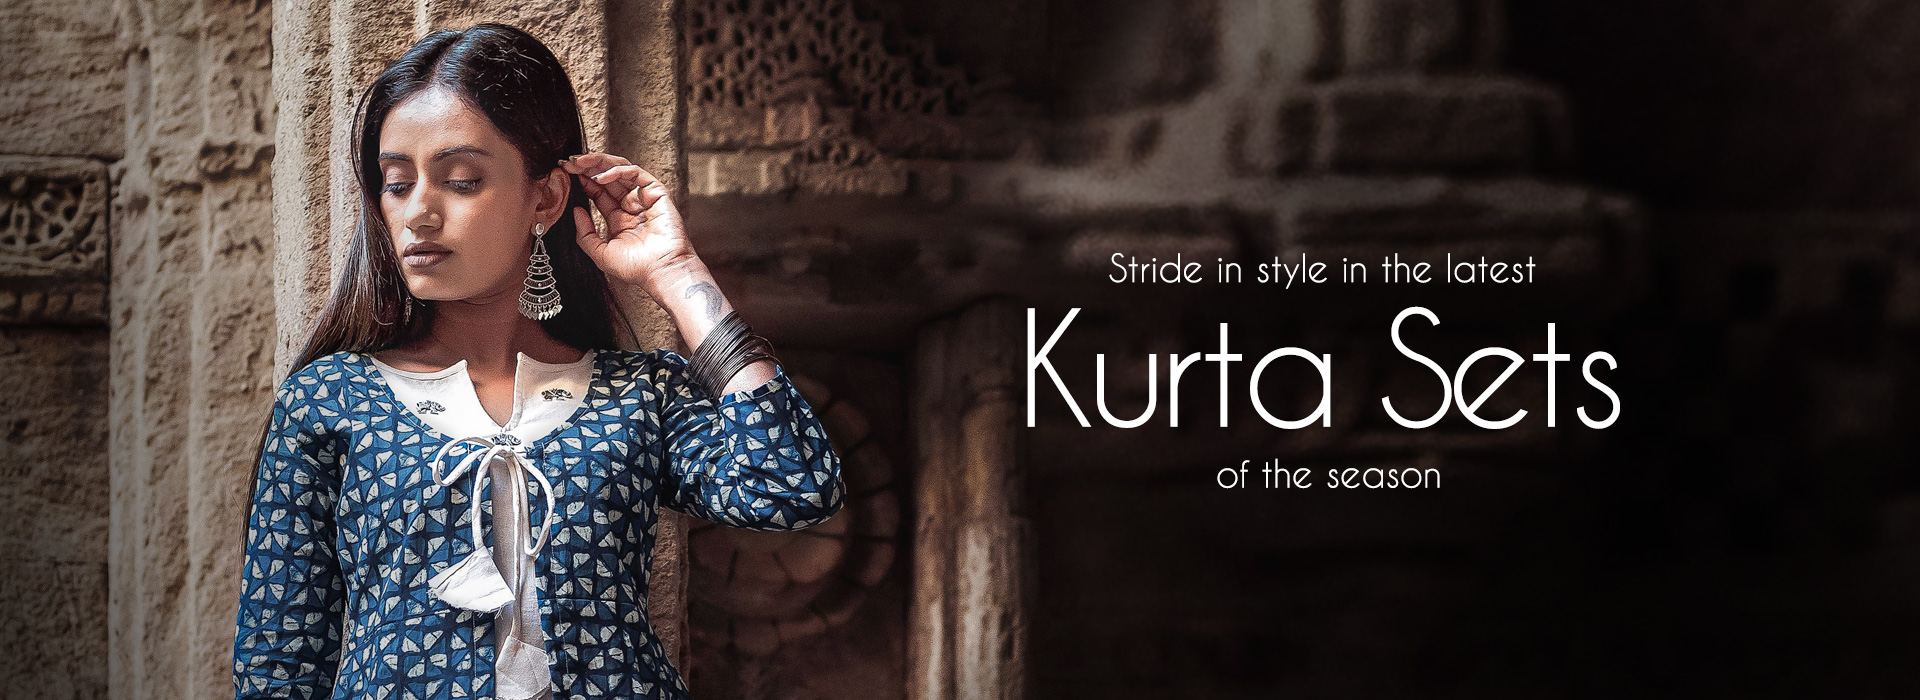 Stride in style in the latest Kurta Sets of the season